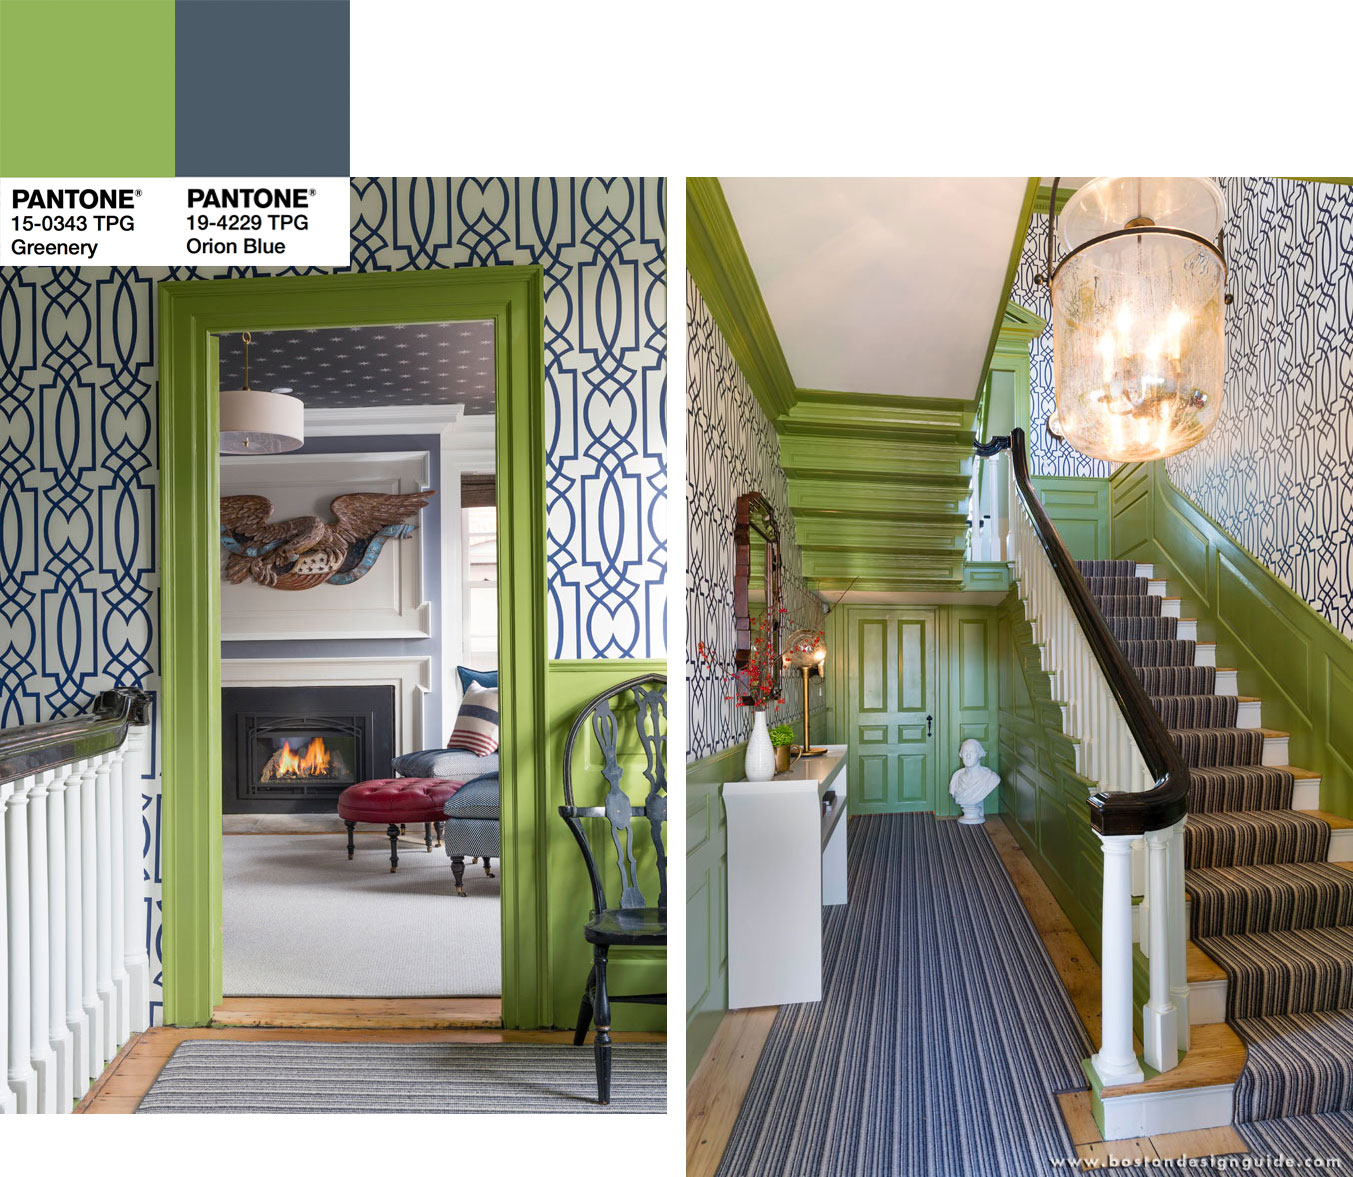 Diverting Europe Nyc Europe Marine Yacht Varnish Fine Paints Europe Home Trends Using Pantone Color Year Greenery Boston Fine Paints Fine Paints houzz-03 Fine Paints Of Europe